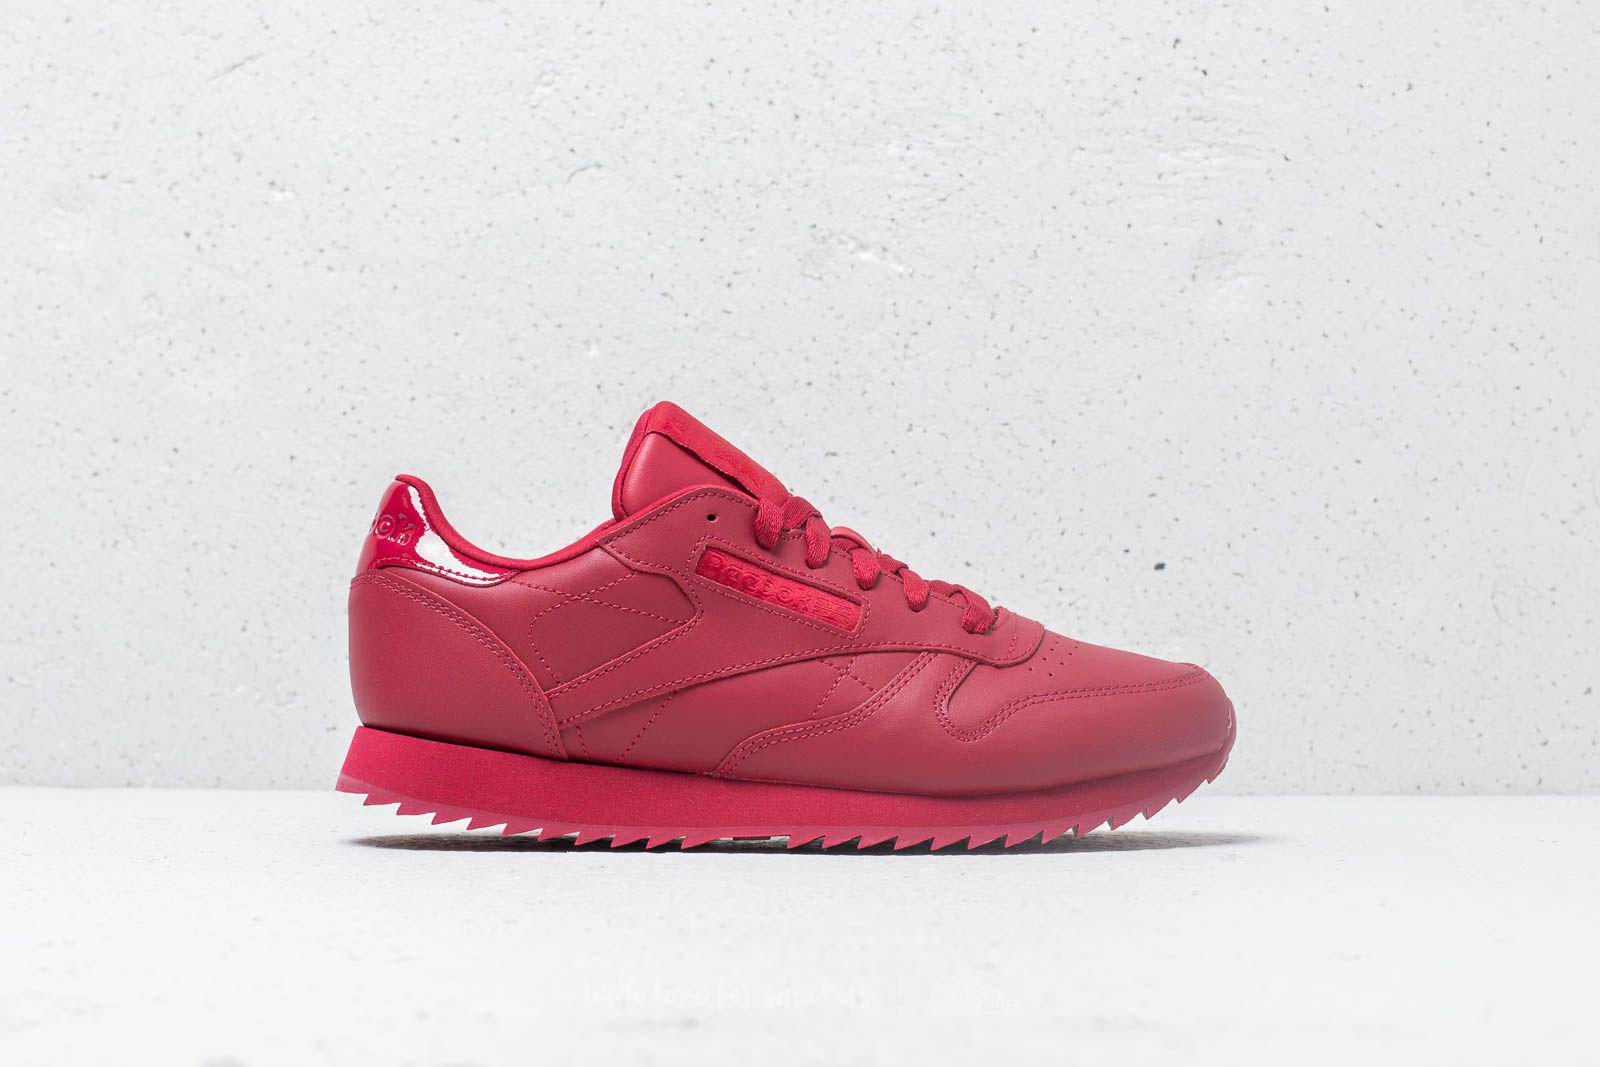 5a1a09c59ef92 Lyst - Reebok Reebok Cl Leather Ripple W Cranberry Red in Red